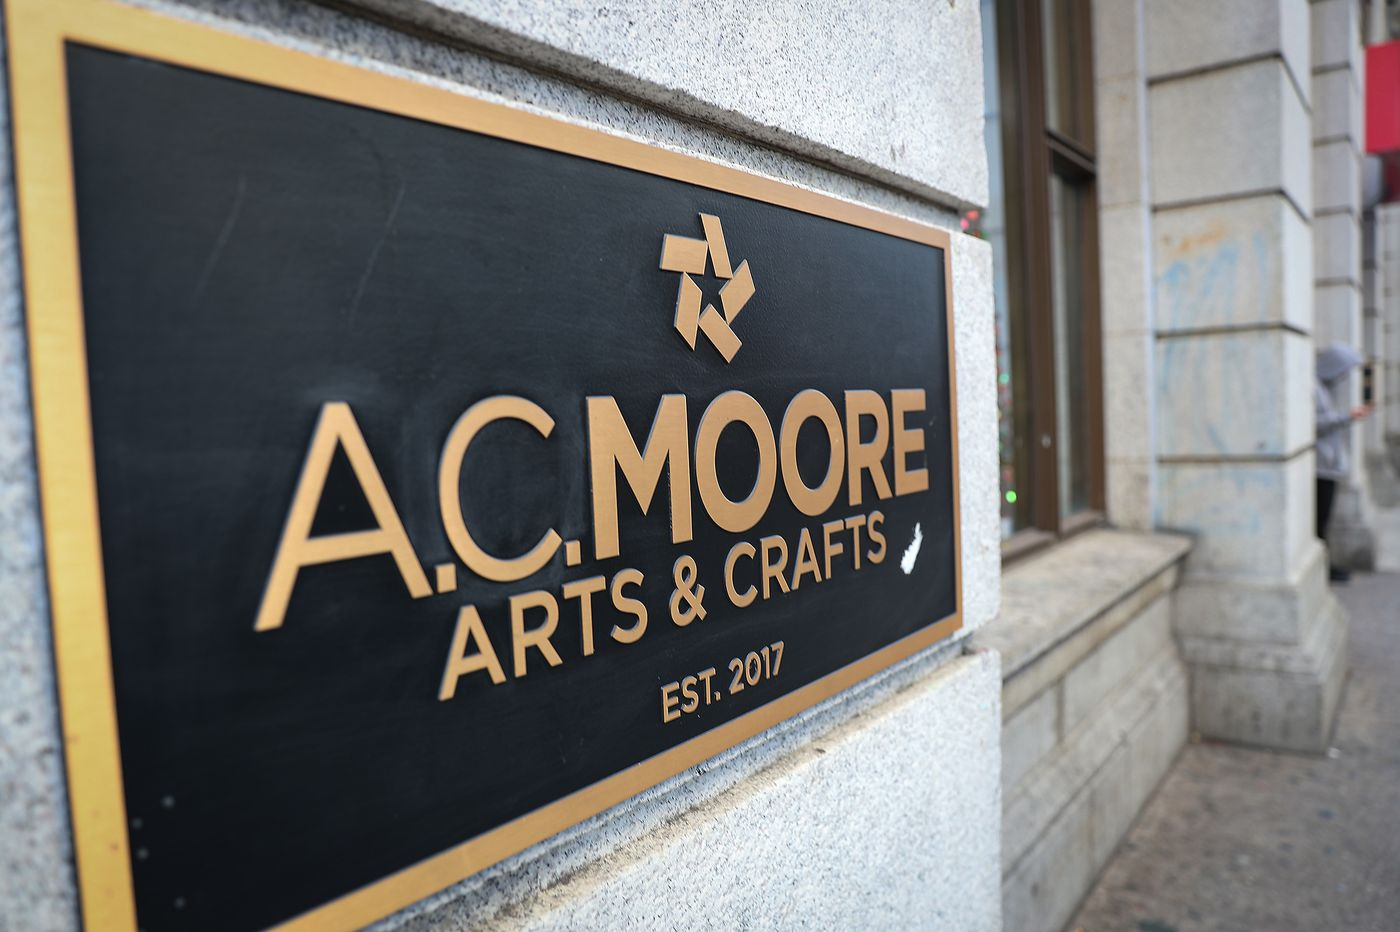 A.C. Moore, based in South Jersey, closing all of its 145 stores